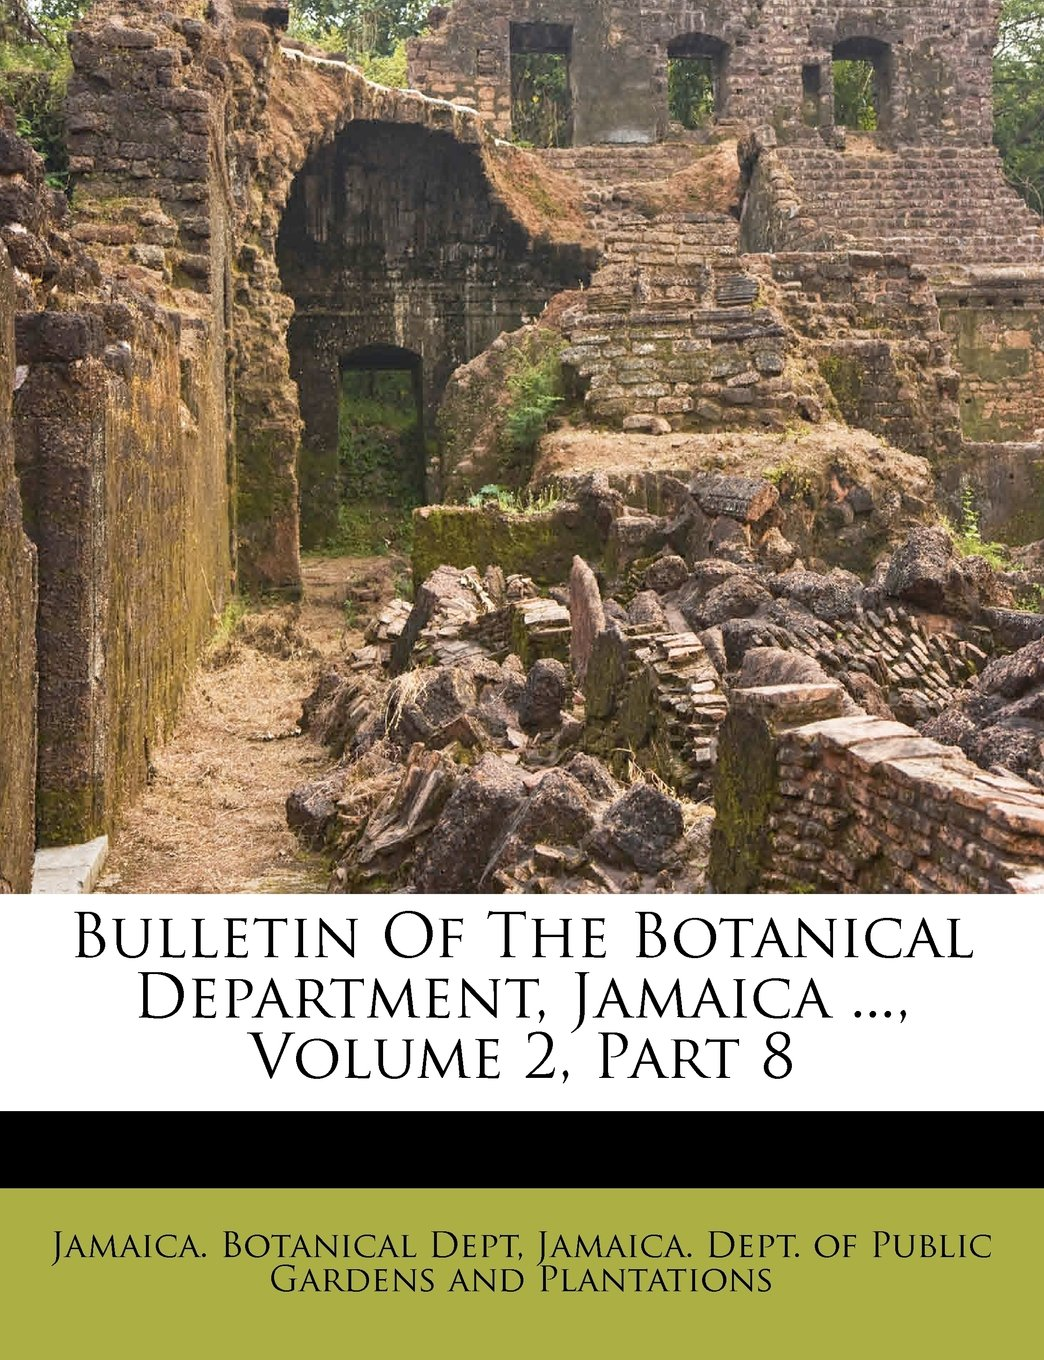 Bulletin Of The Botanical Department, Jamaica ..., Volume 2, Part 8